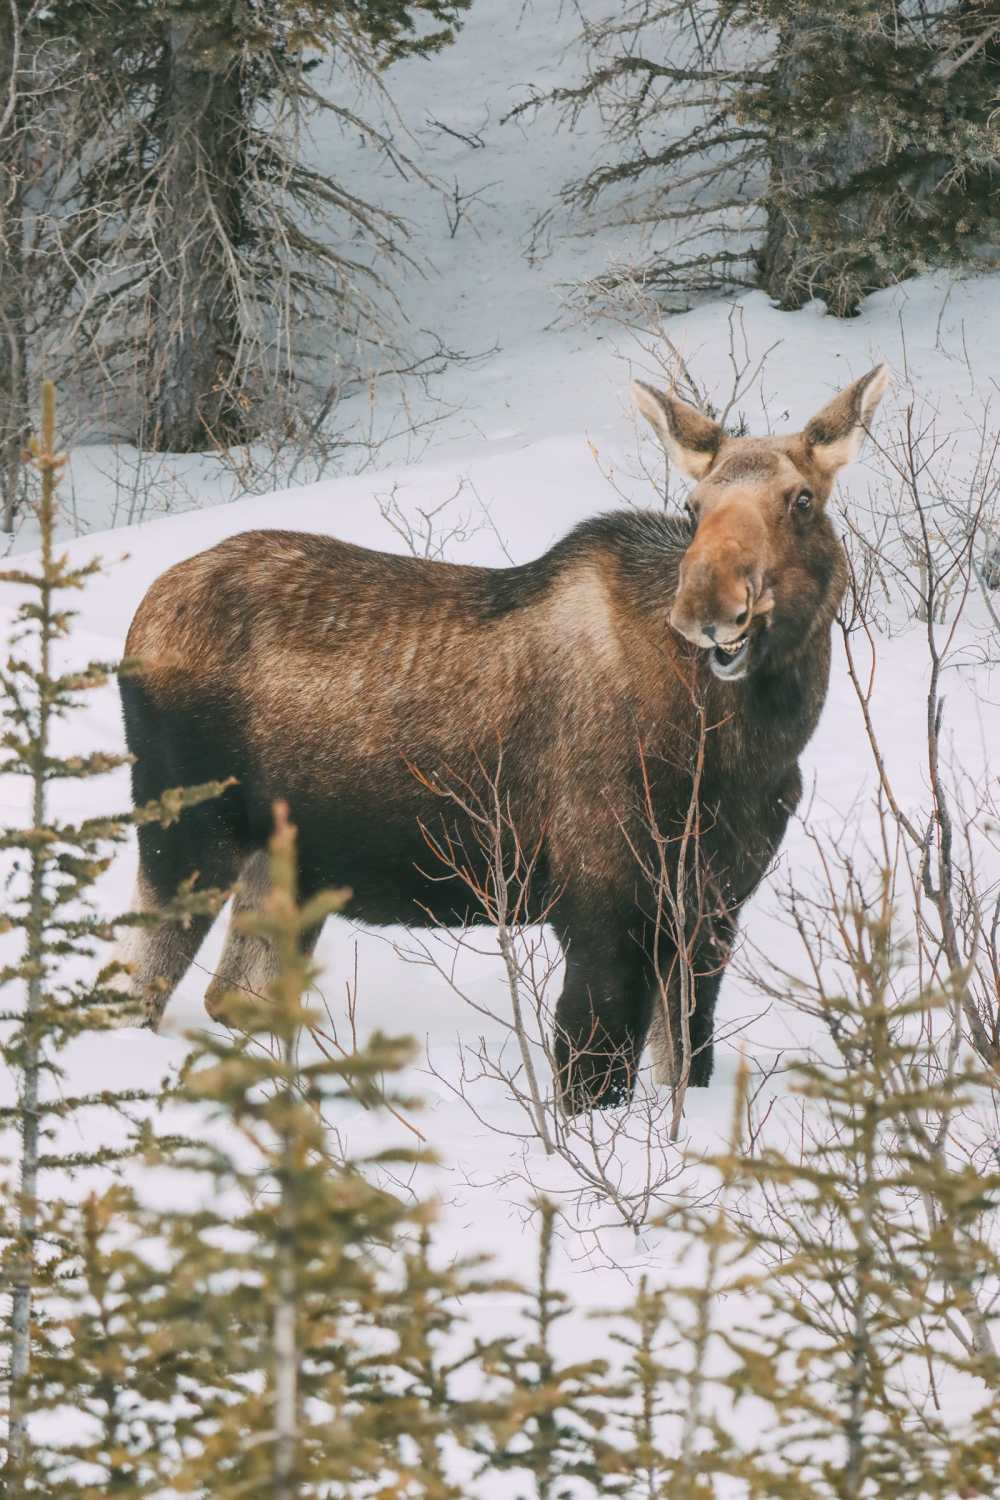 Finding Wild Moose And Skiing In Sunshine Village... In Banff, Canada (7)